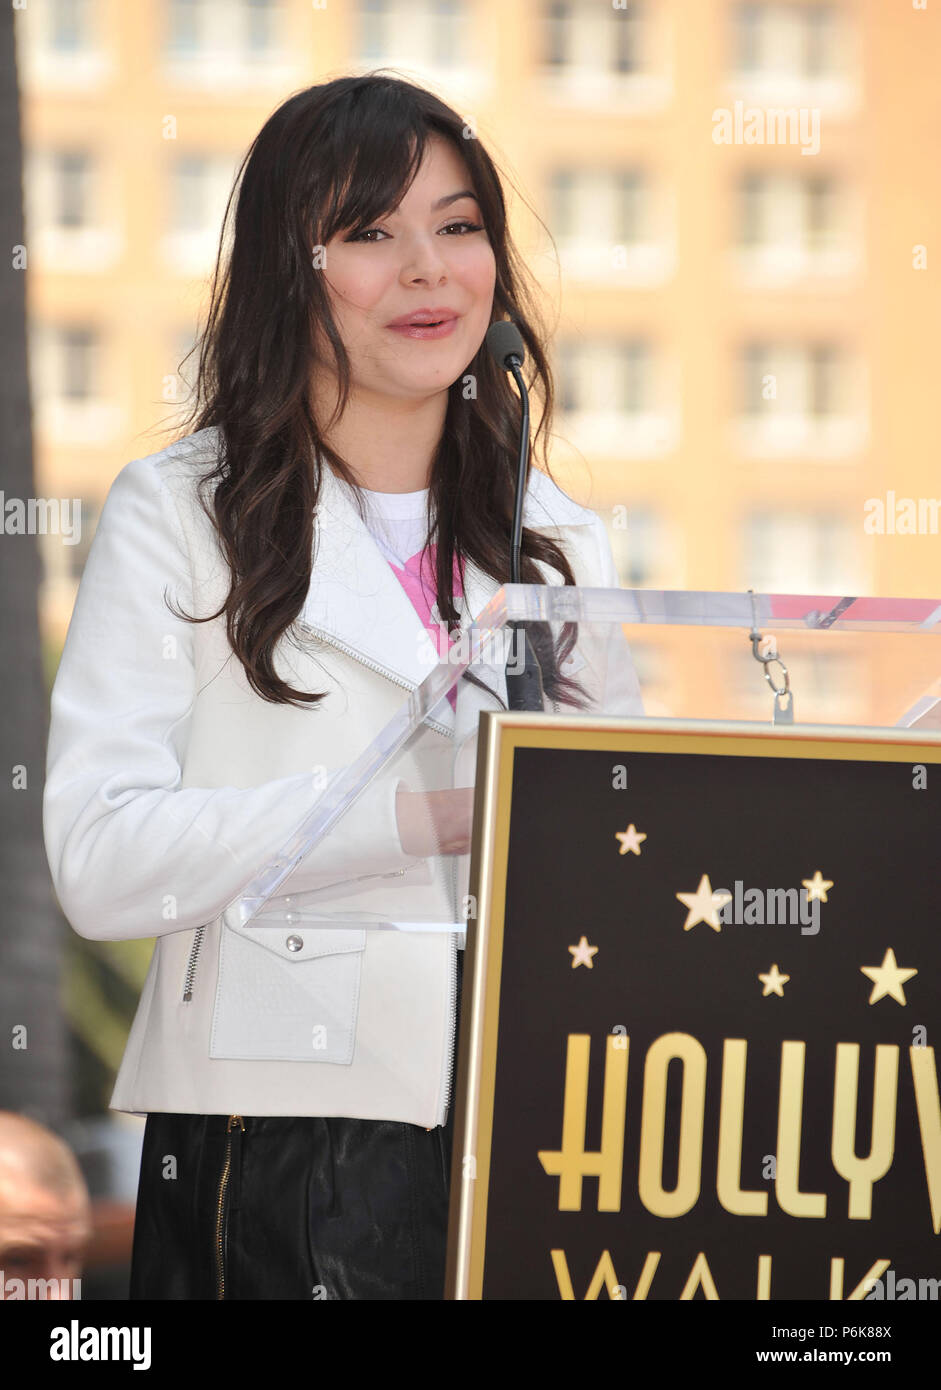 Miranda Cosgrove  at Ellen K Honored with a Star on the Hollywood Walk of Fame In Los Angeles. Radio talk show host at KIIS Fm ( in LA and many radio station in US and around the world ).Miranda Cosgrove   Event in Hollywood Life - California, Red Carpet Event, USA, Film Industry, Celebrities, Photography, Bestof, Arts Culture and Entertainment, Topix Celebrities fashion, Best of, Hollywood Life, Event in Hollywood Life - California, movie celebrities, TV celebrities, Music celebrities, Topix, Bestof, Arts Culture and Entertainment, Photography,    inquiry tsuni@Gamma-USA.com , Credit Tsuni /  - Stock Image